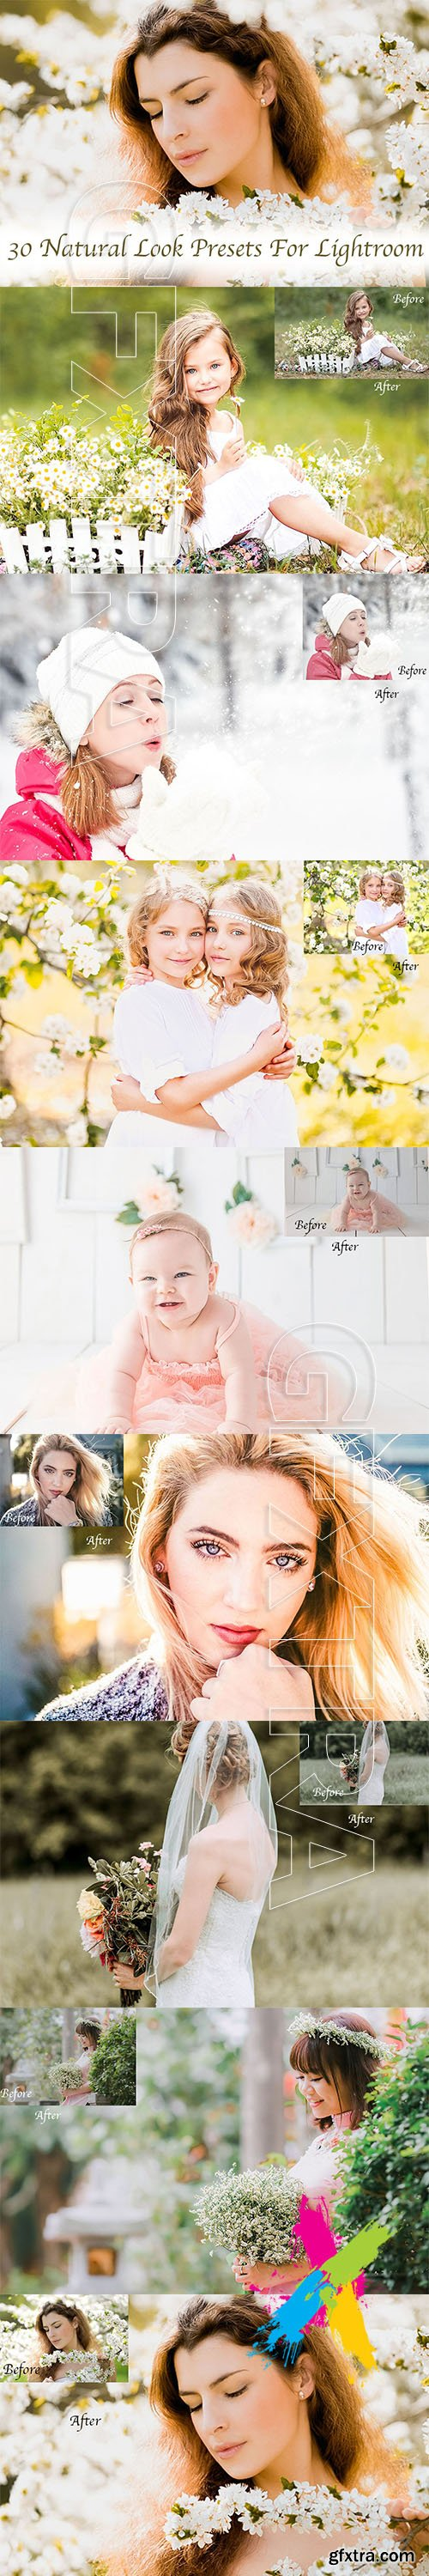 CreativeMarket - 30 Natural Look Presets for Lightroom 5747300